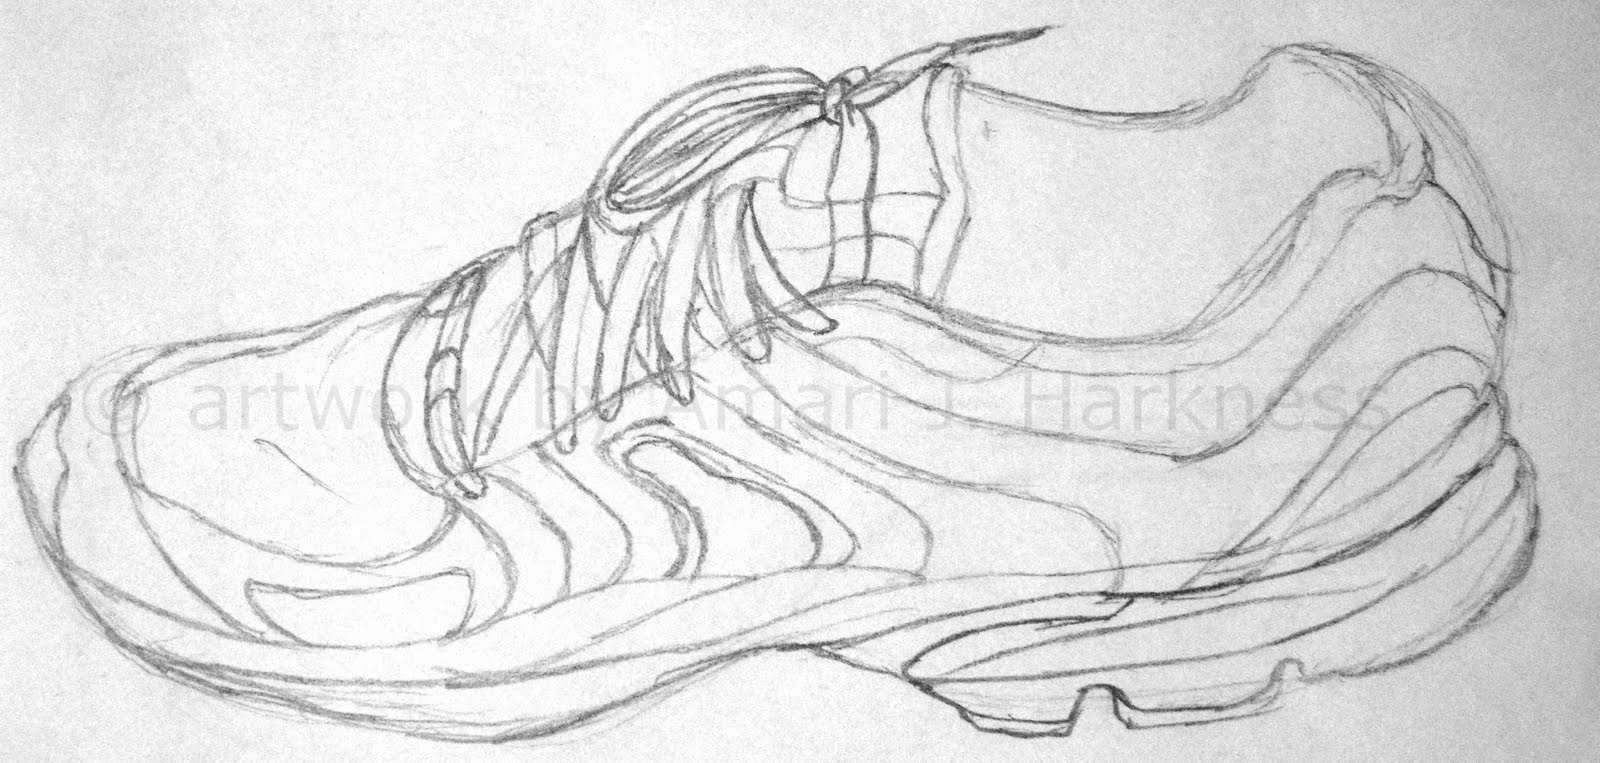 Contour Line Drawing Of Shoes : Sketching with reckless abandon some random sketches